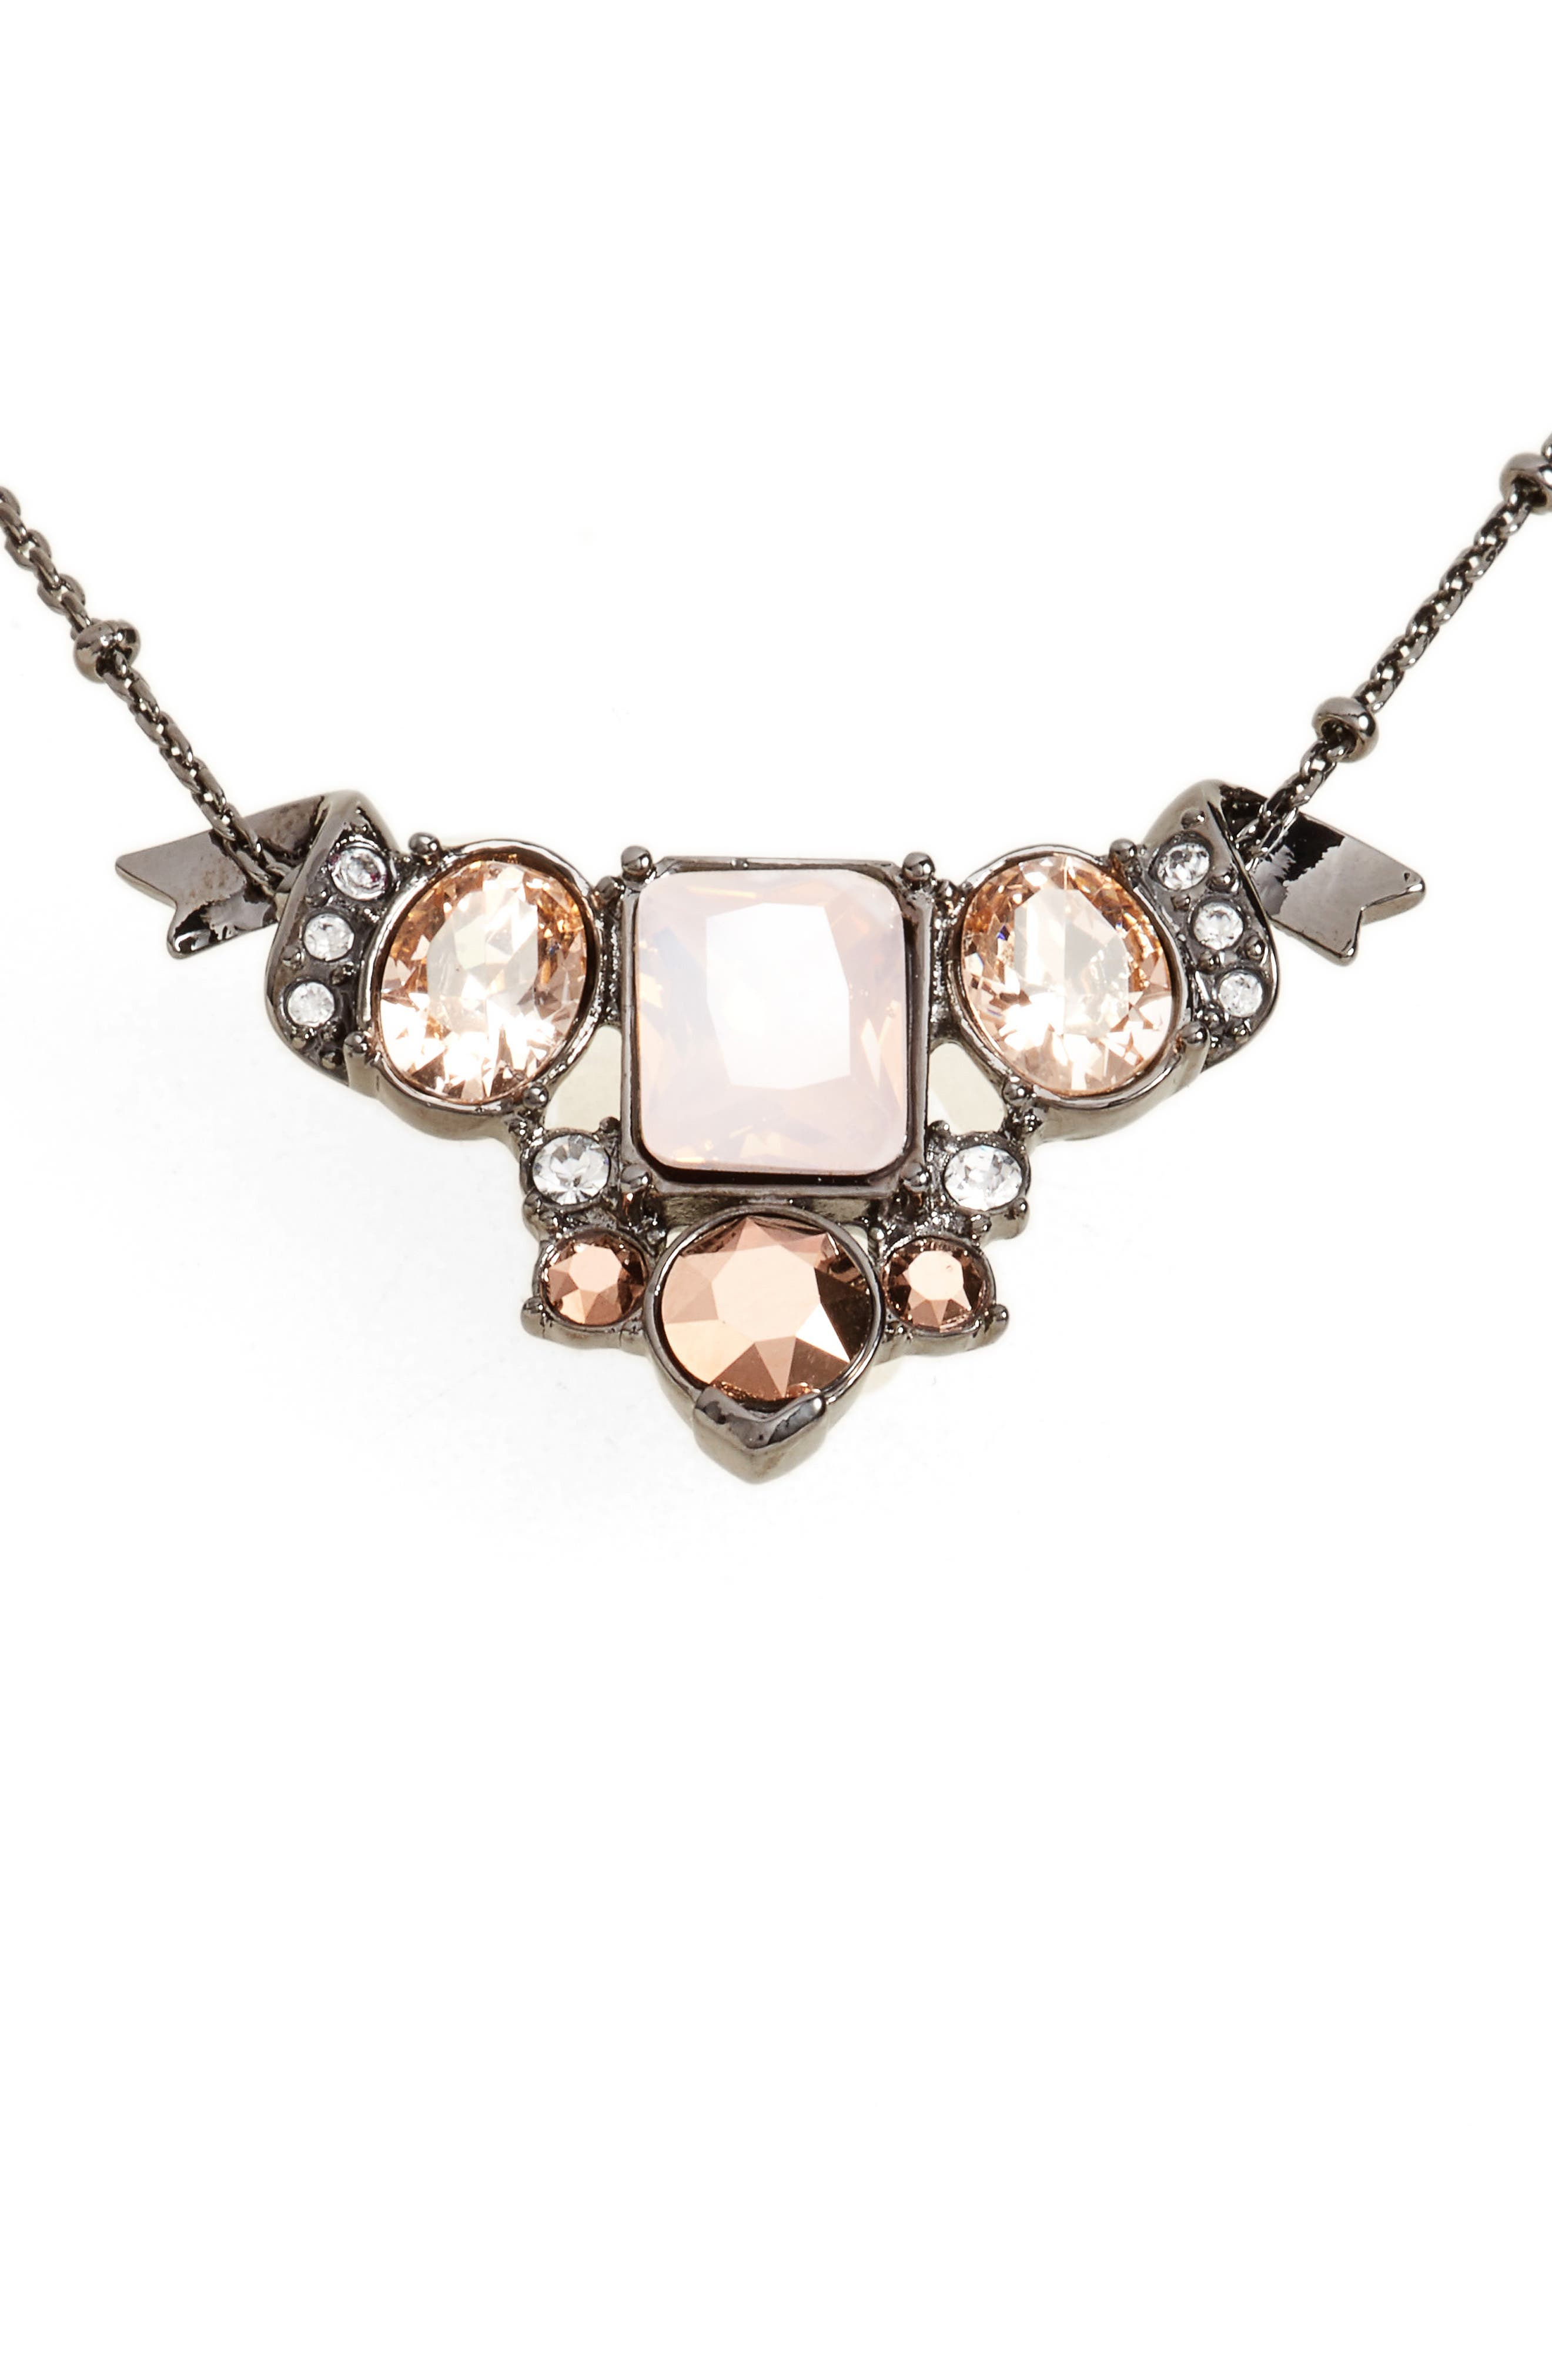 Jenny Packham Frontal Necklace